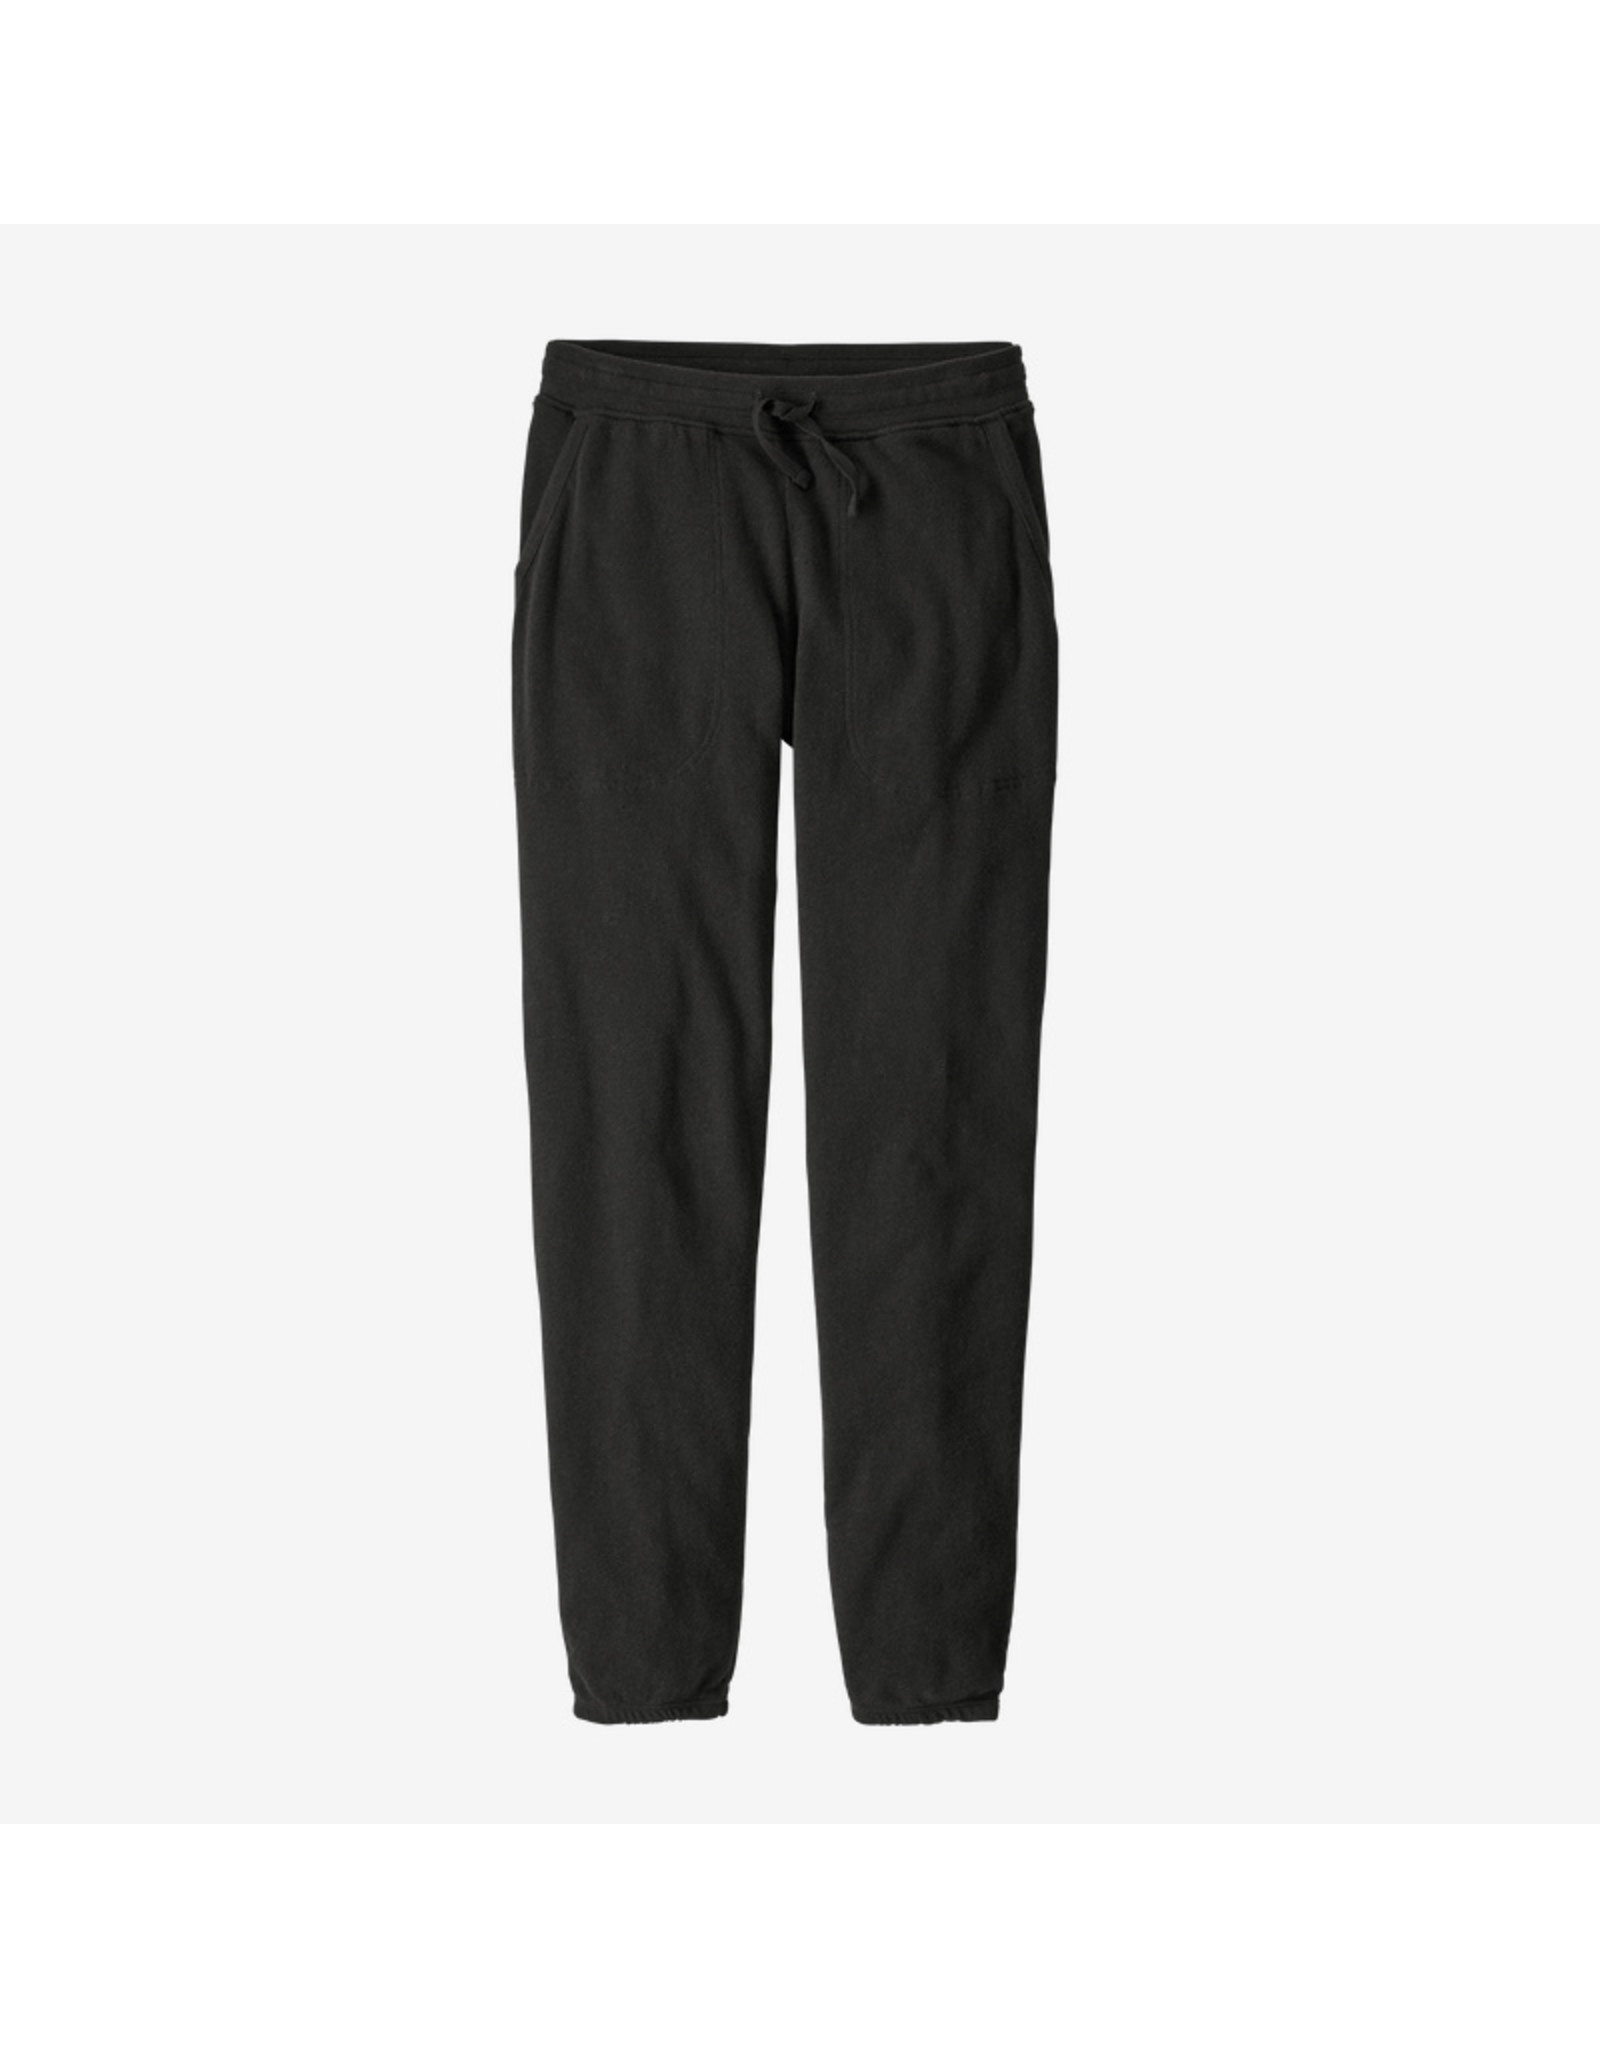 Patagonia Patagonia - Women's Organic Cotton French Terry Pants